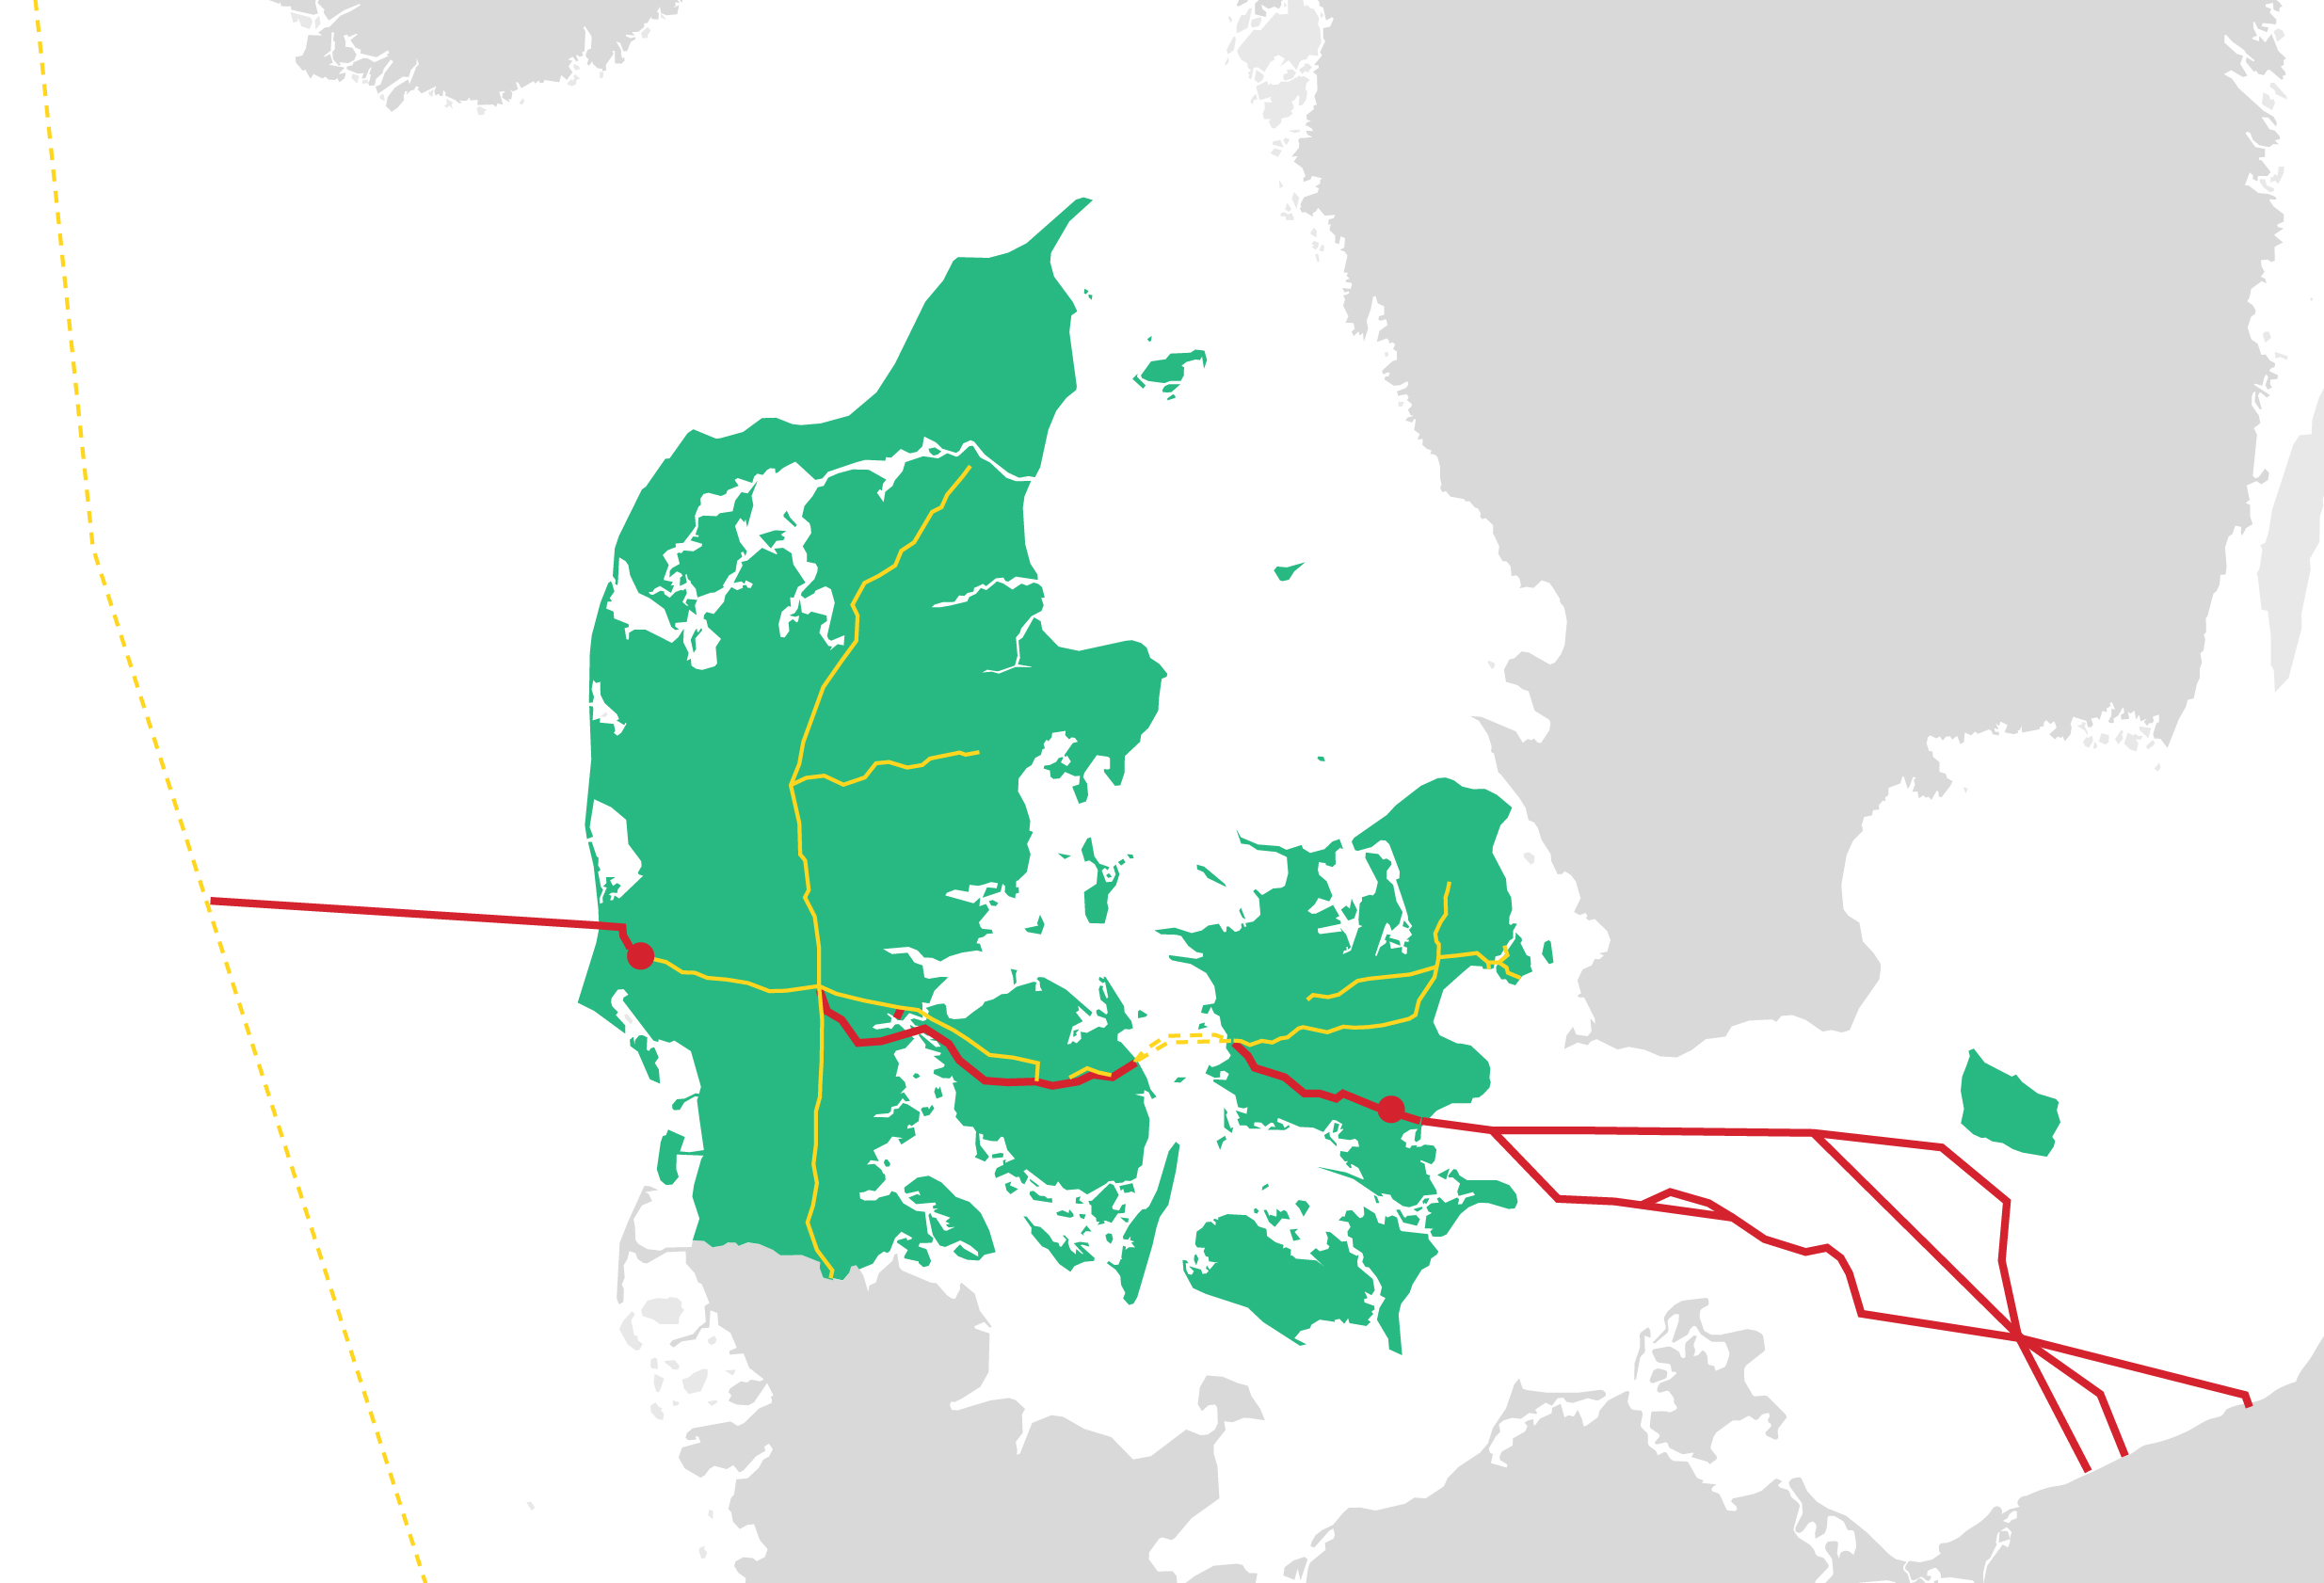 Kort over projektet - Baltic Pipe